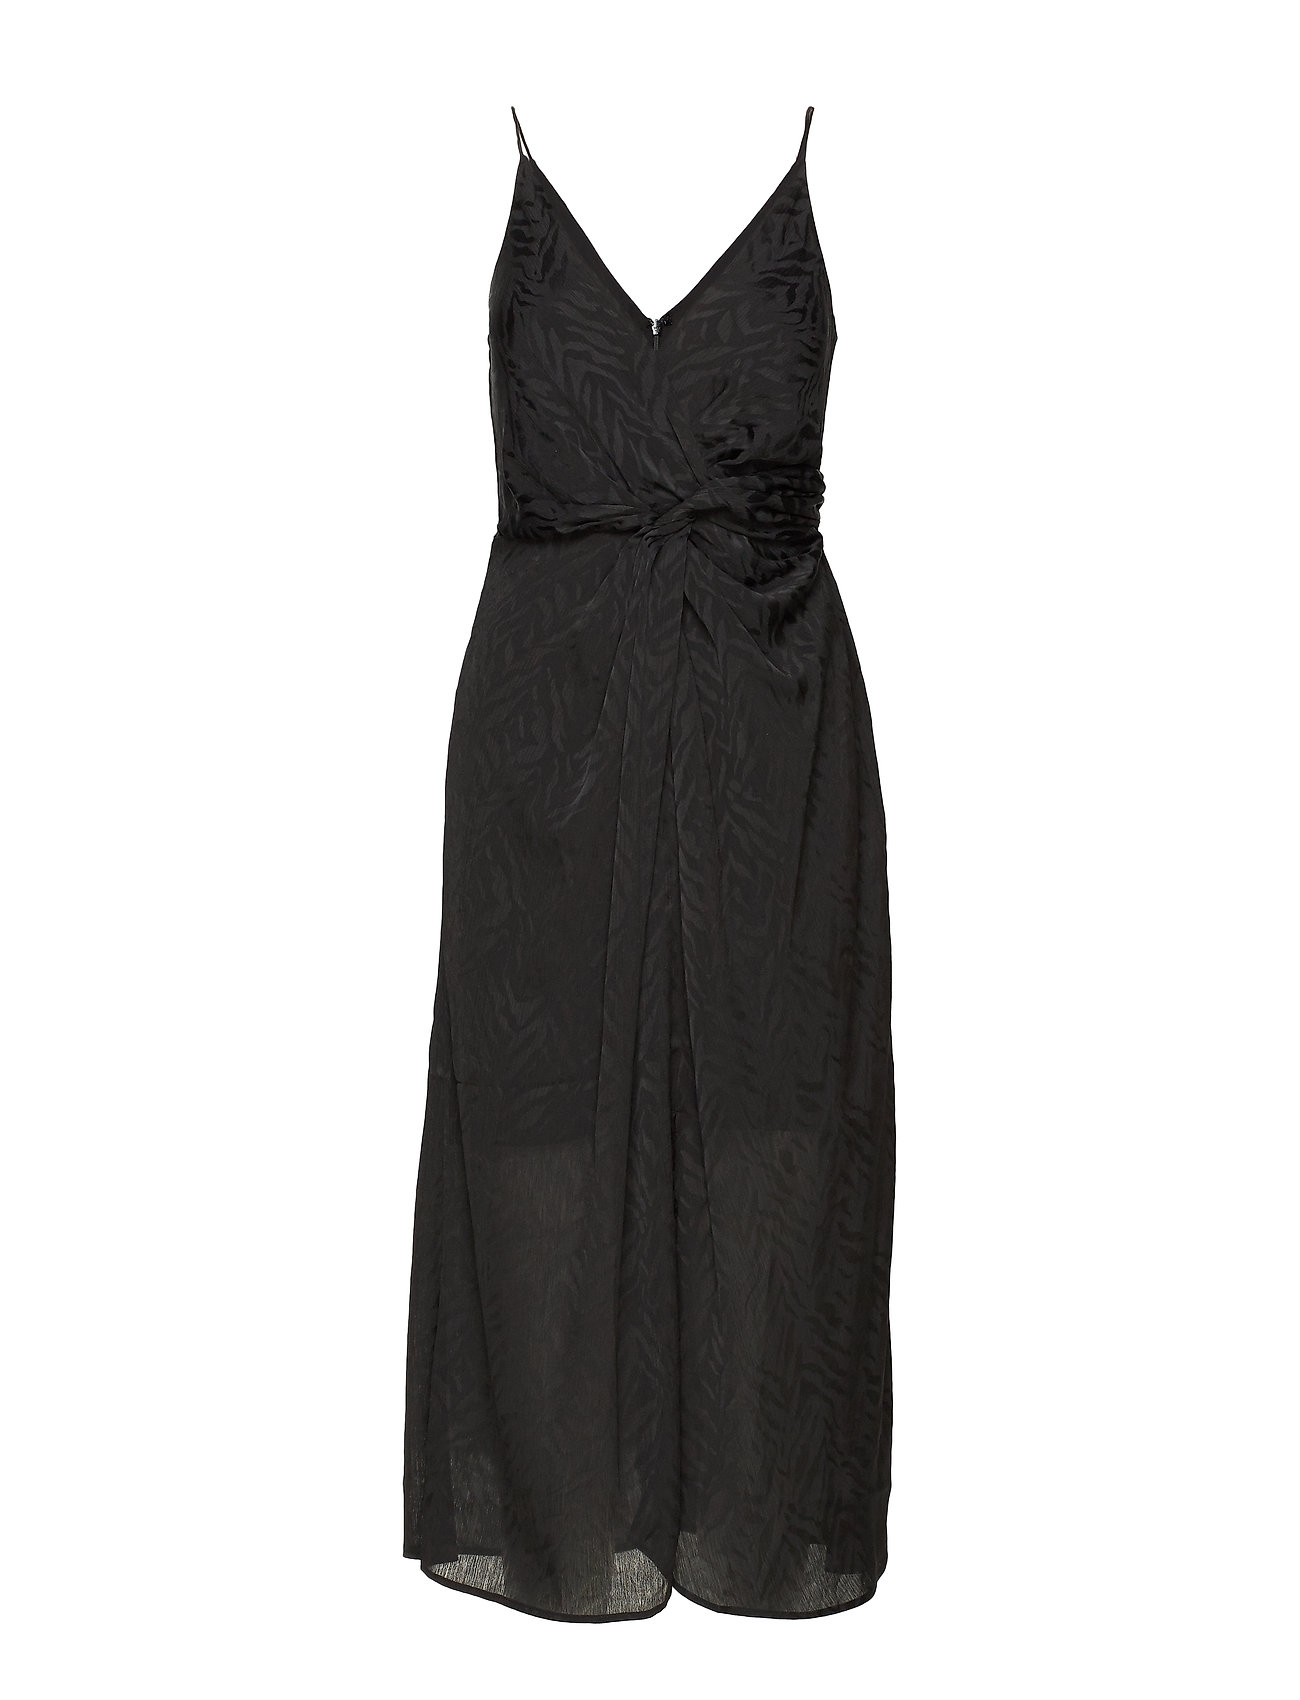 Samsøe & Samsøe Dance dress 11240 - BLACK